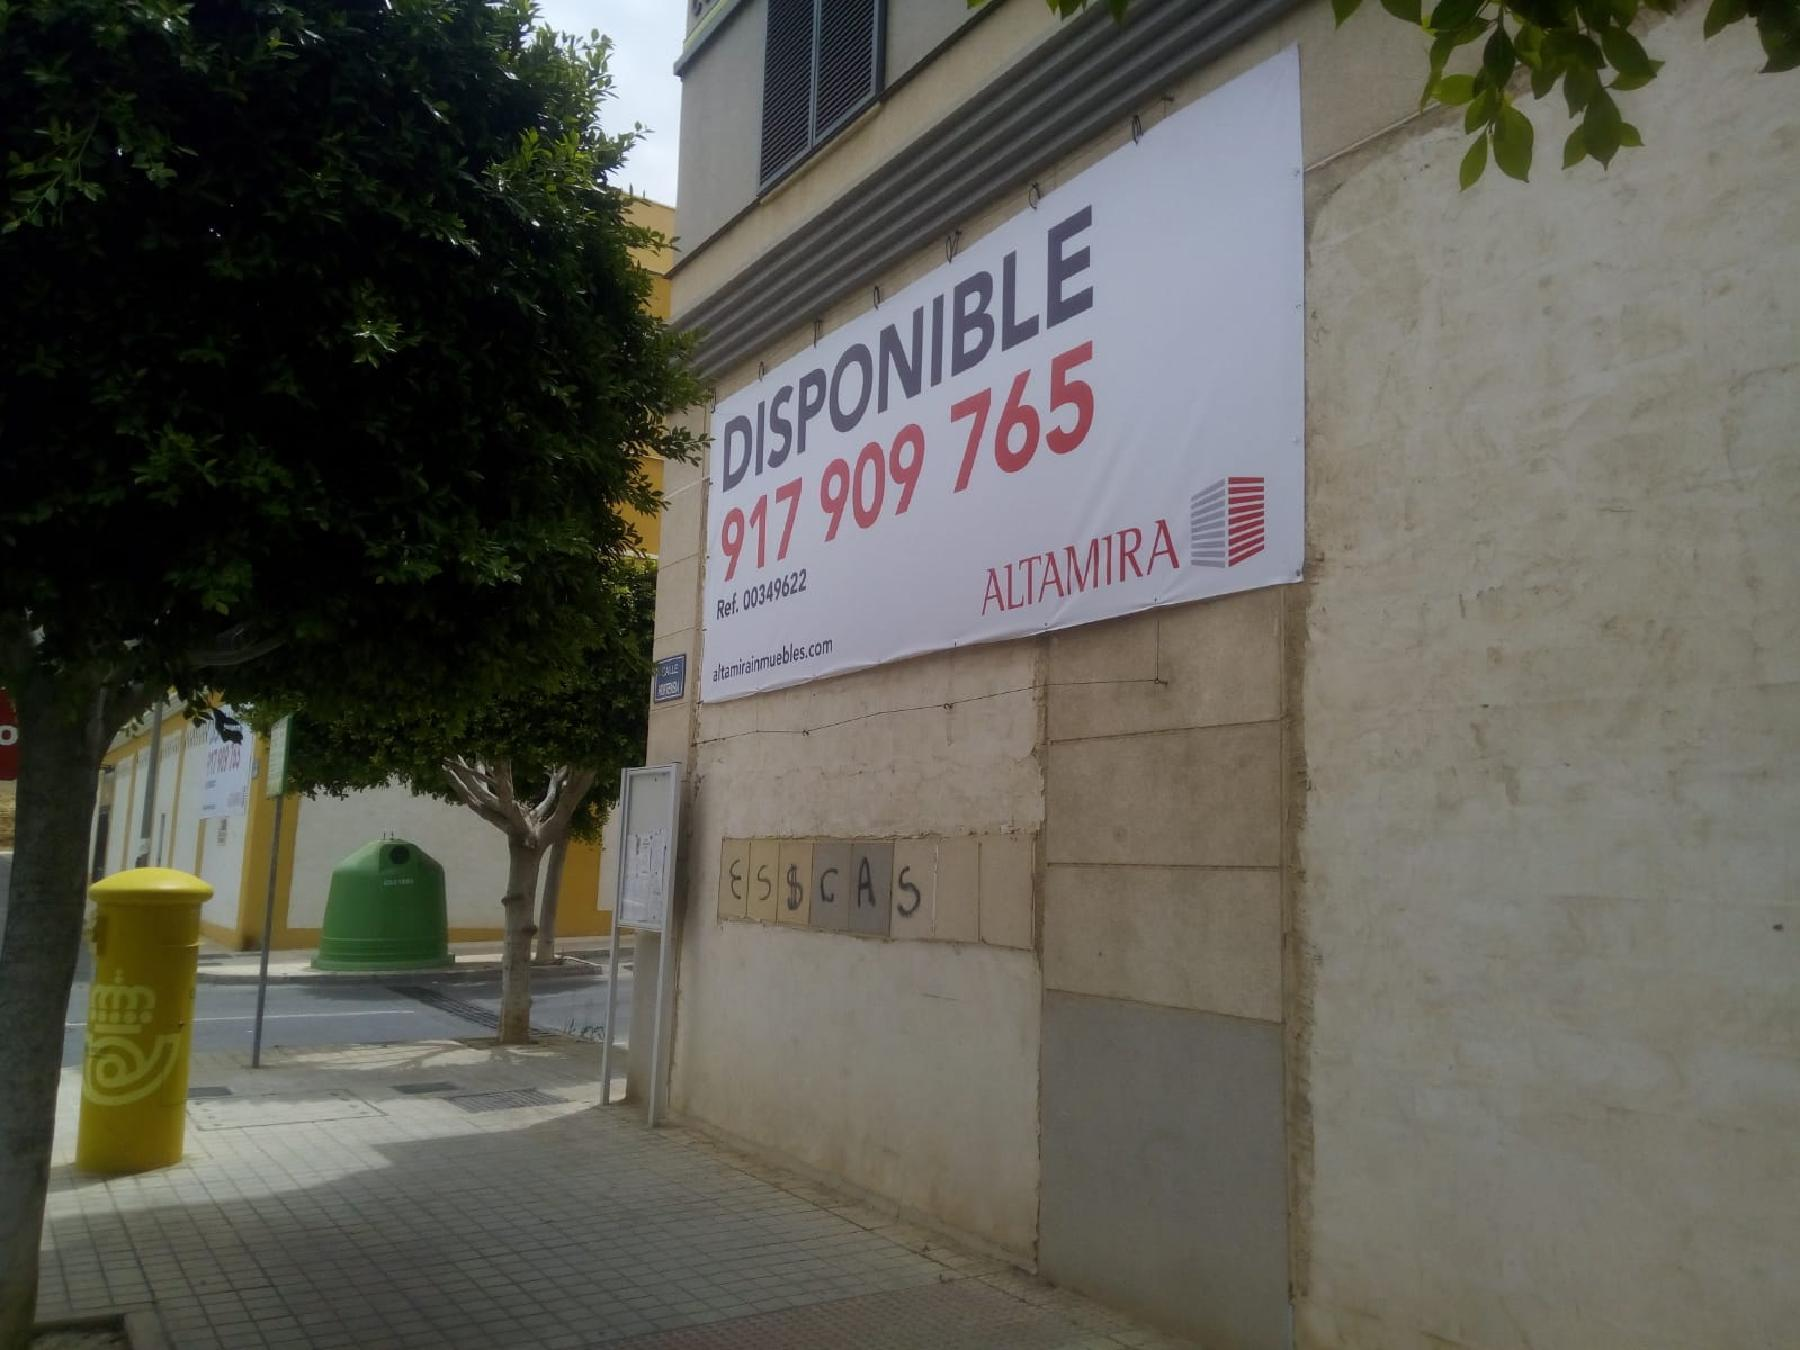 Local Comercial en Benahadux